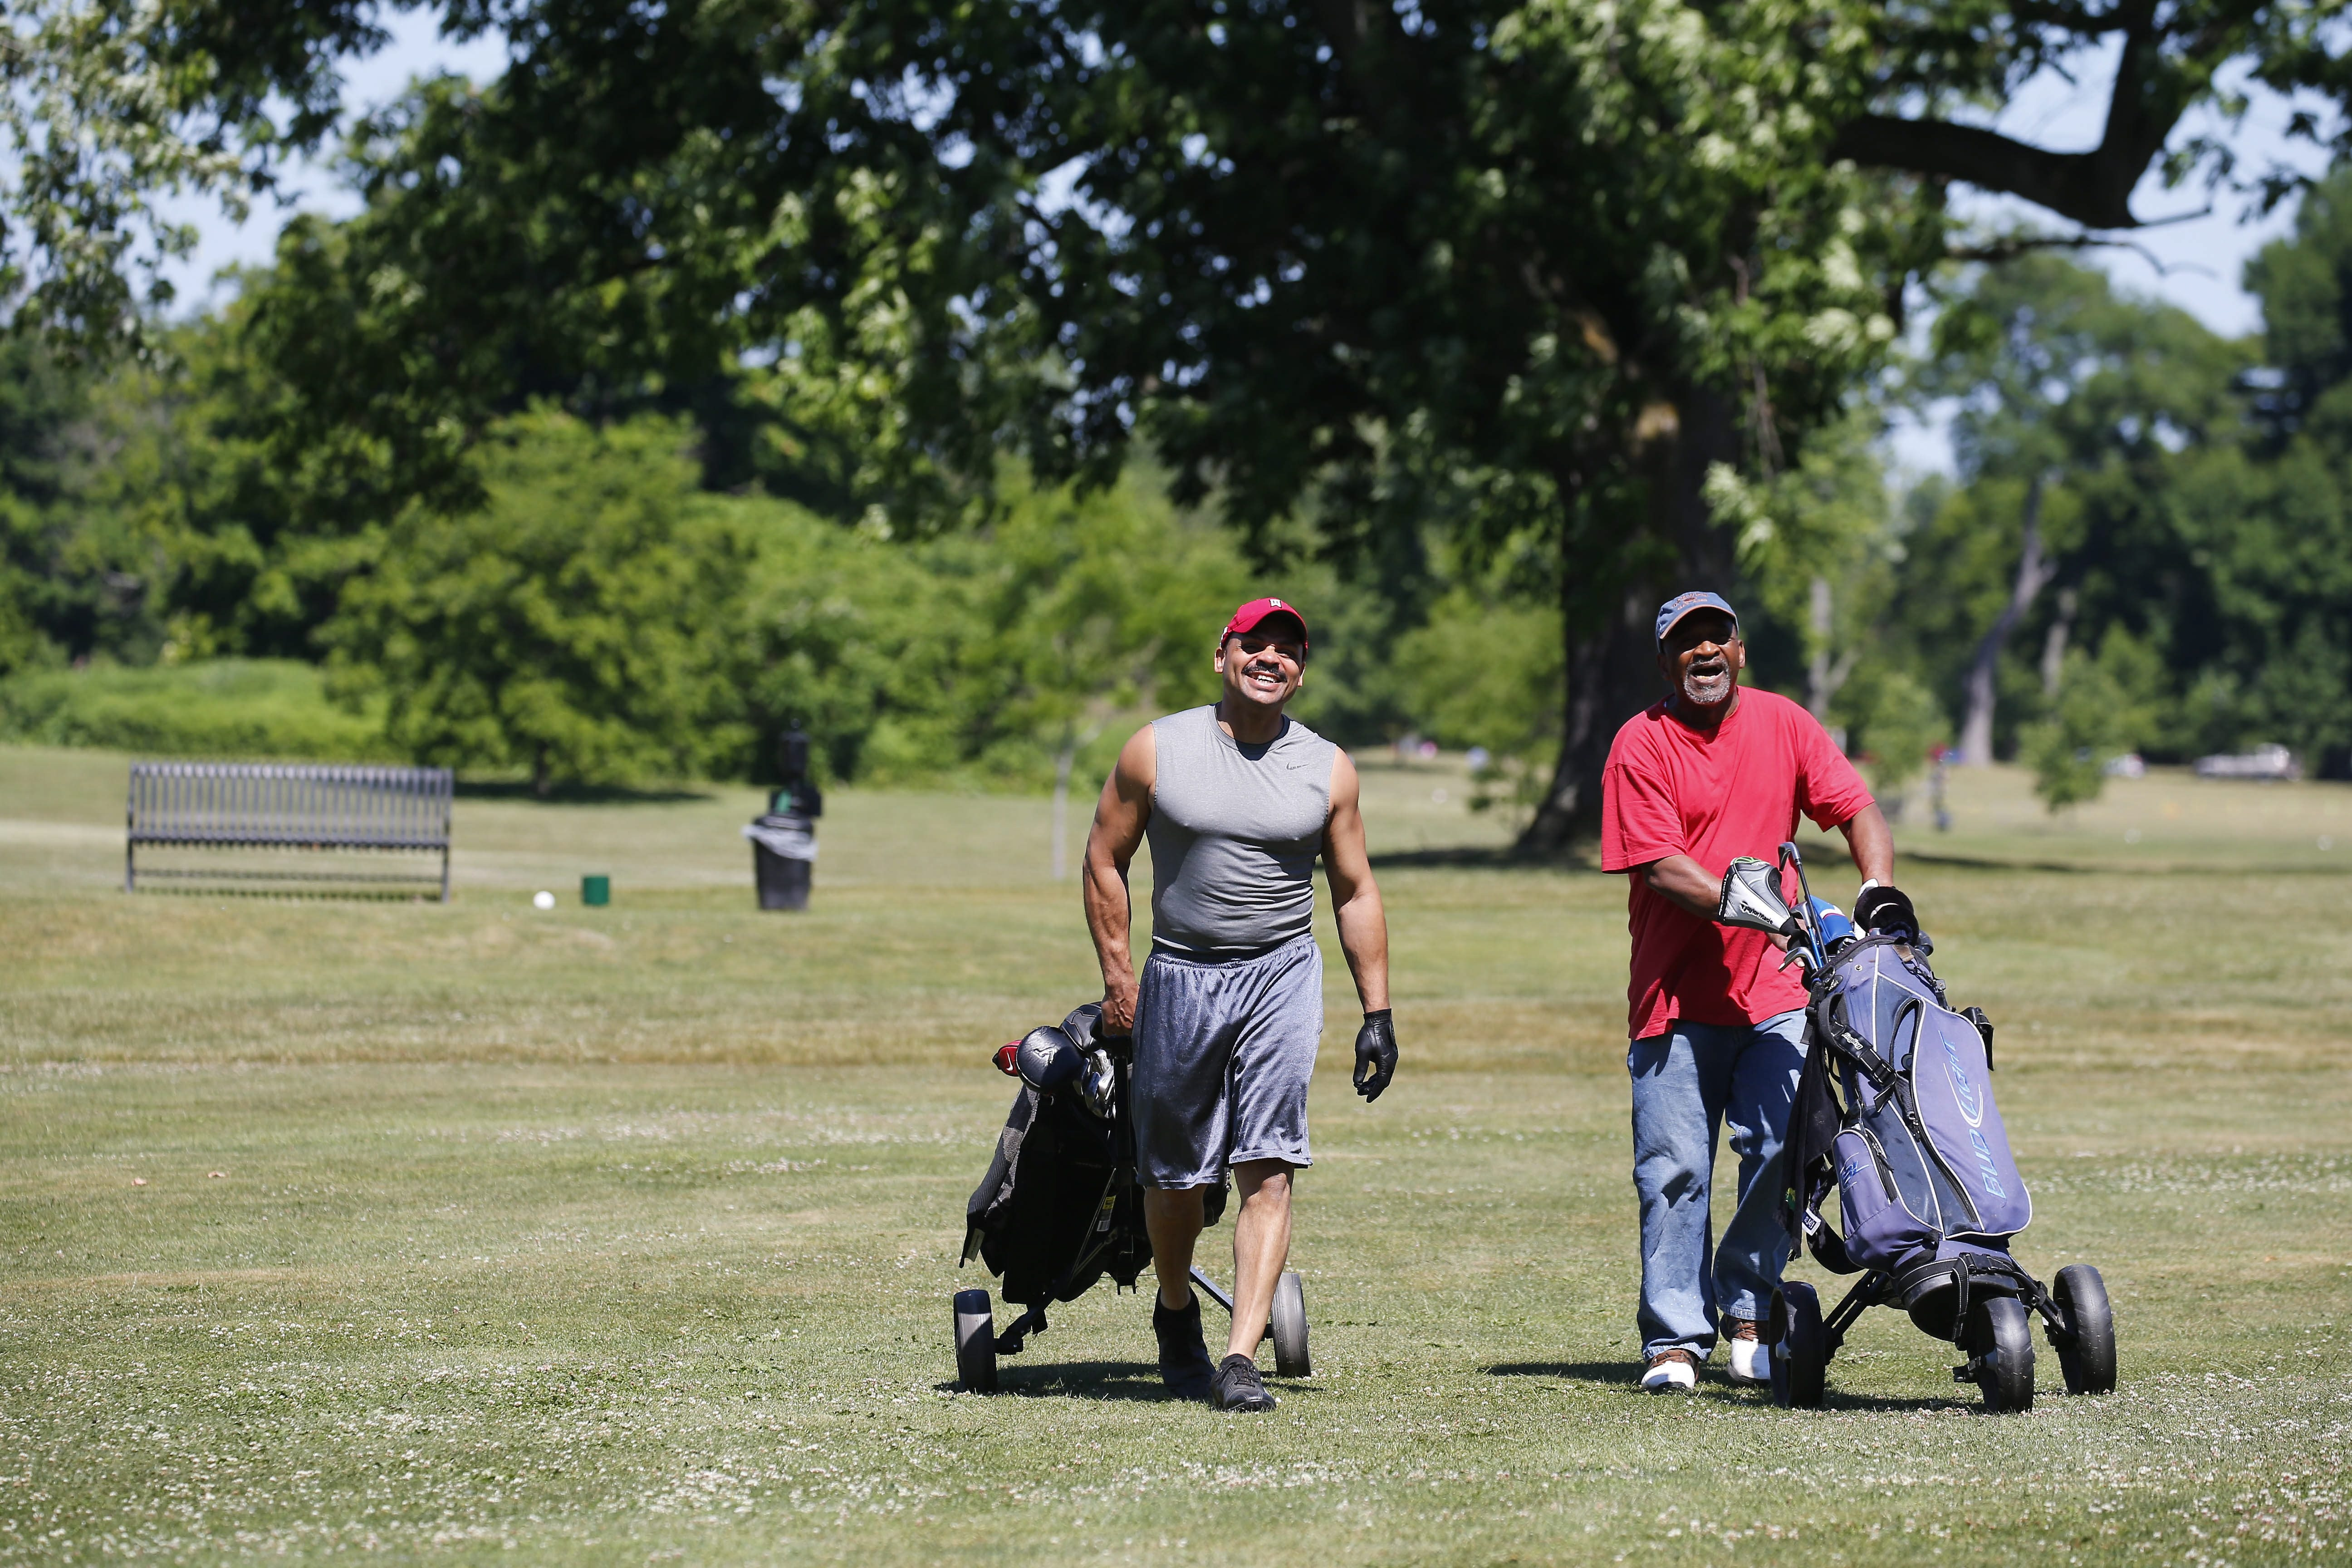 Ramon Suarez, left, and Bob Grice, right, walk to their tee shots at the Delaware Park Golf course in Buffalo on June 17. (Mark Mulville/News file photo)